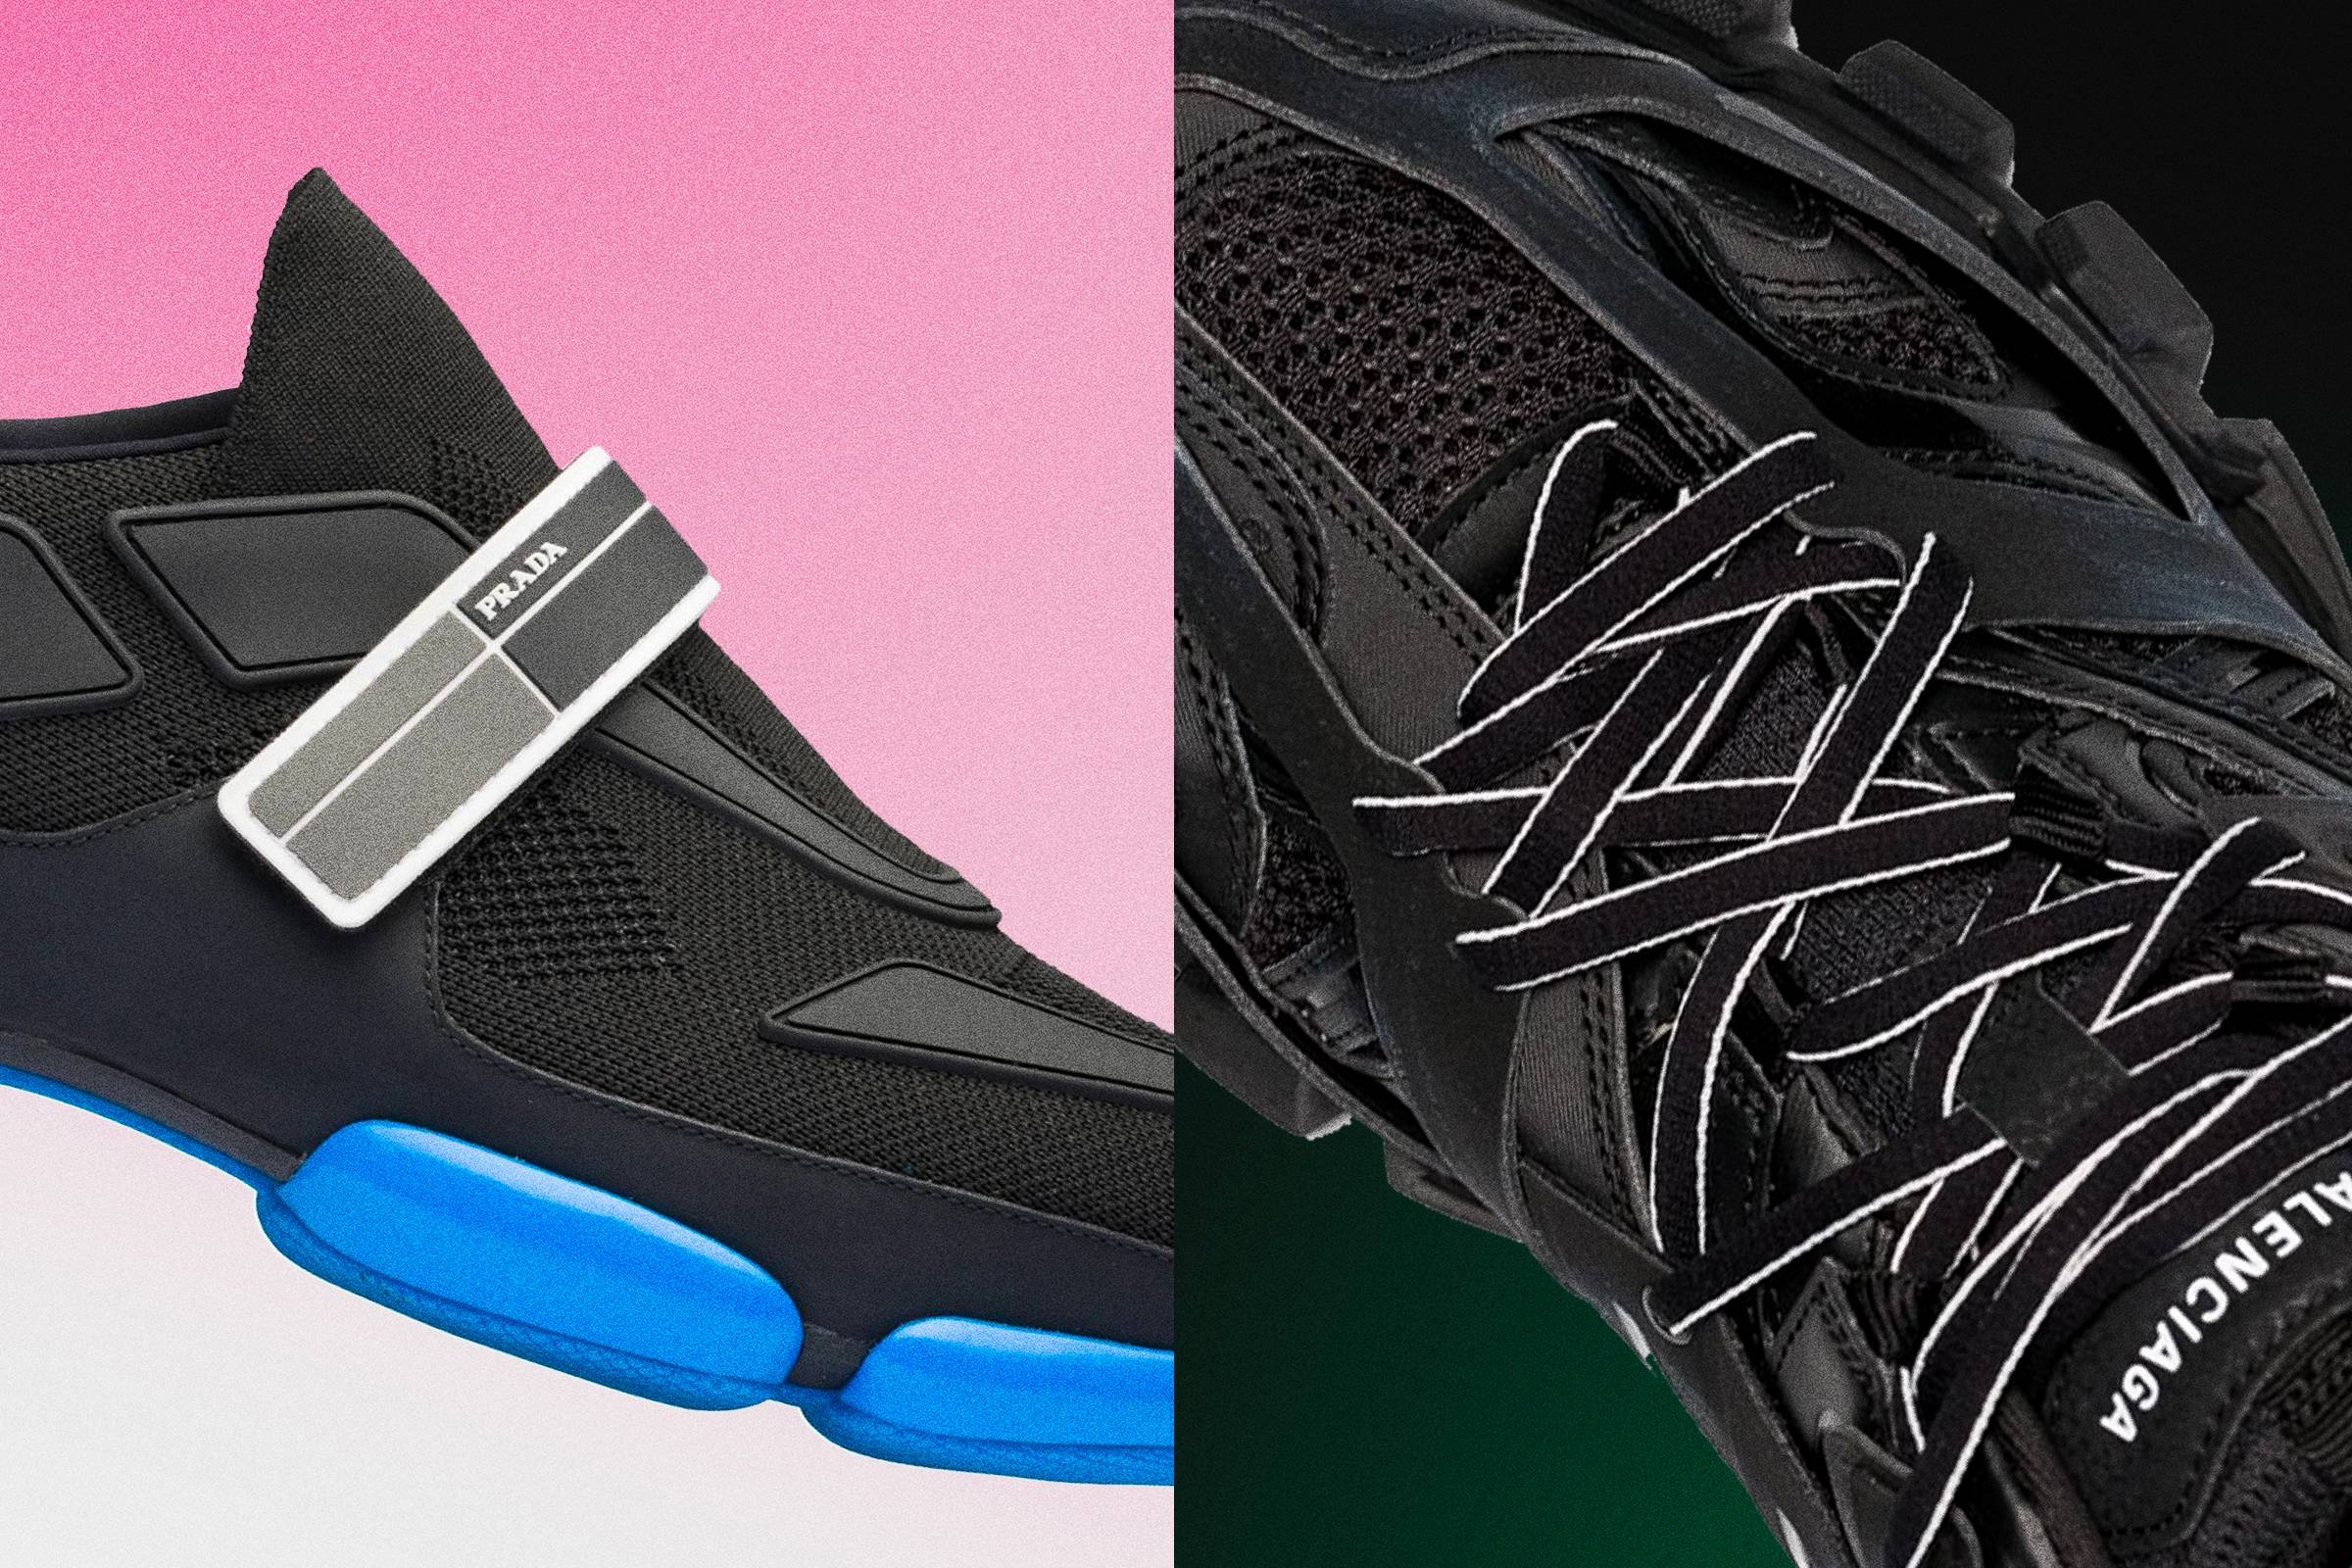 The 10 Best Luxury Sneakers to Buy in 2020 and 2021